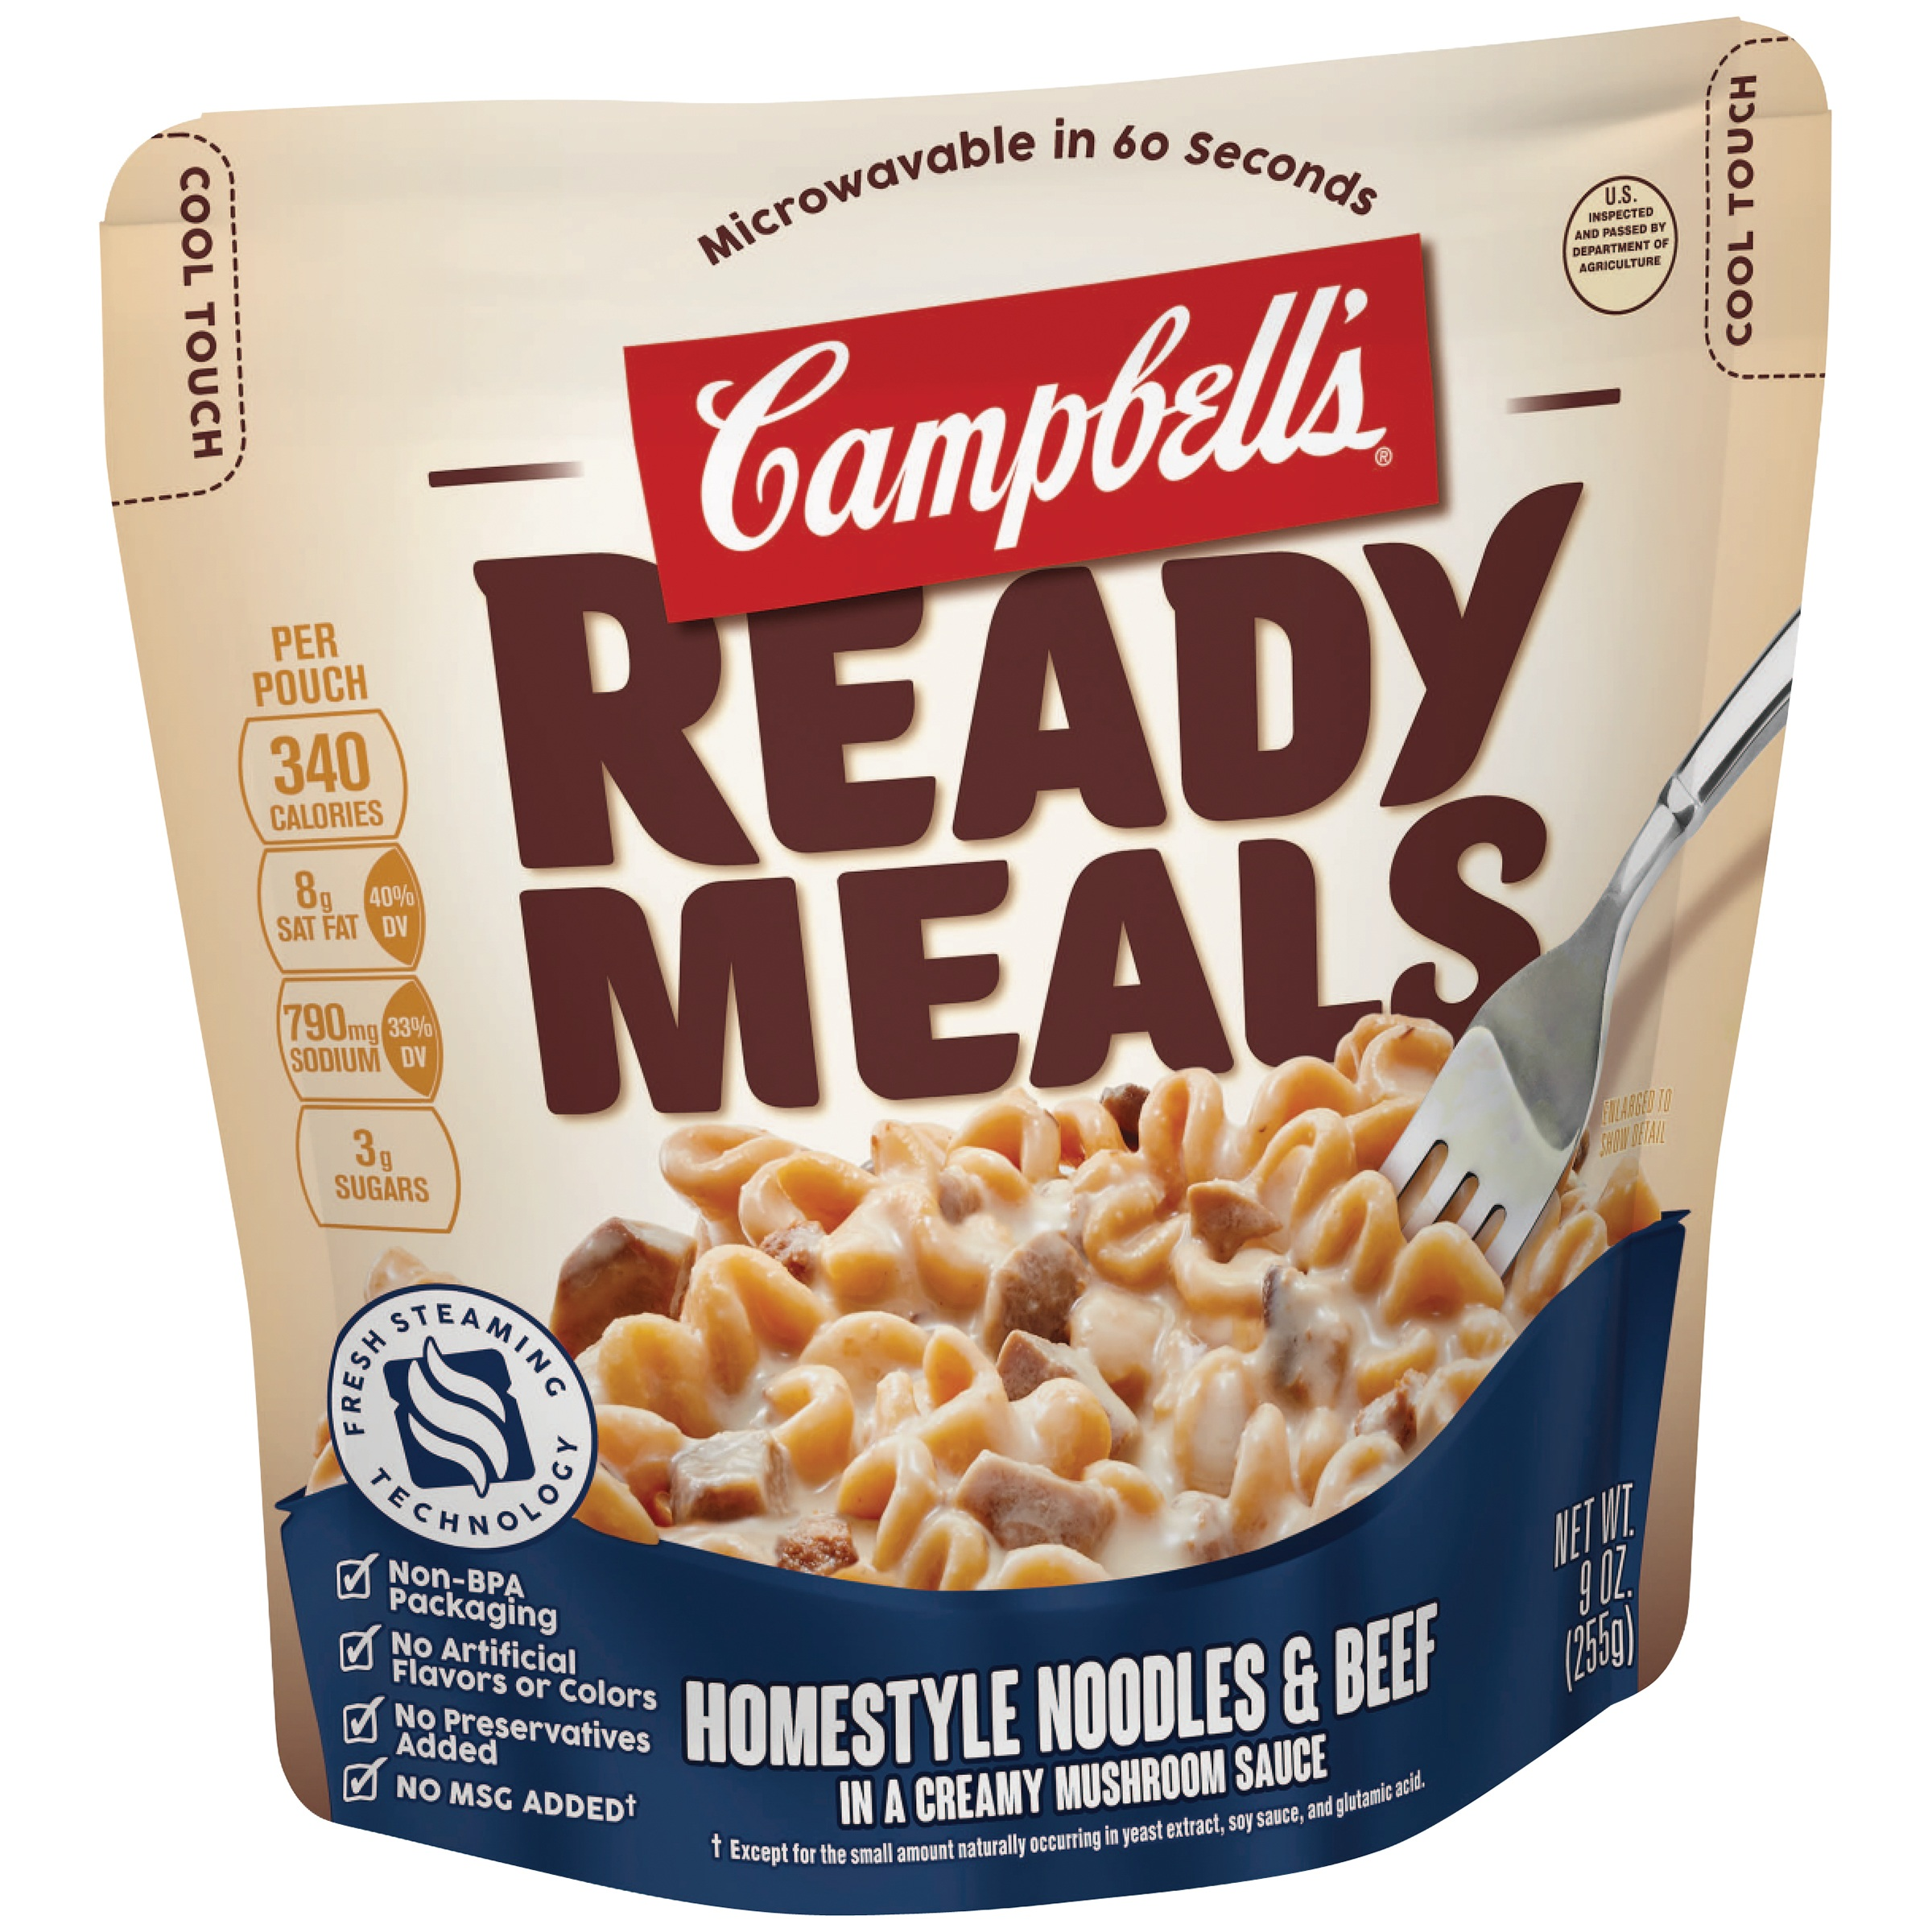 Campbell's Ready Meals Homestyle Noodles & Beef in a Creamy Mushroom Sauce, 9 oz by Campbell Soup Company